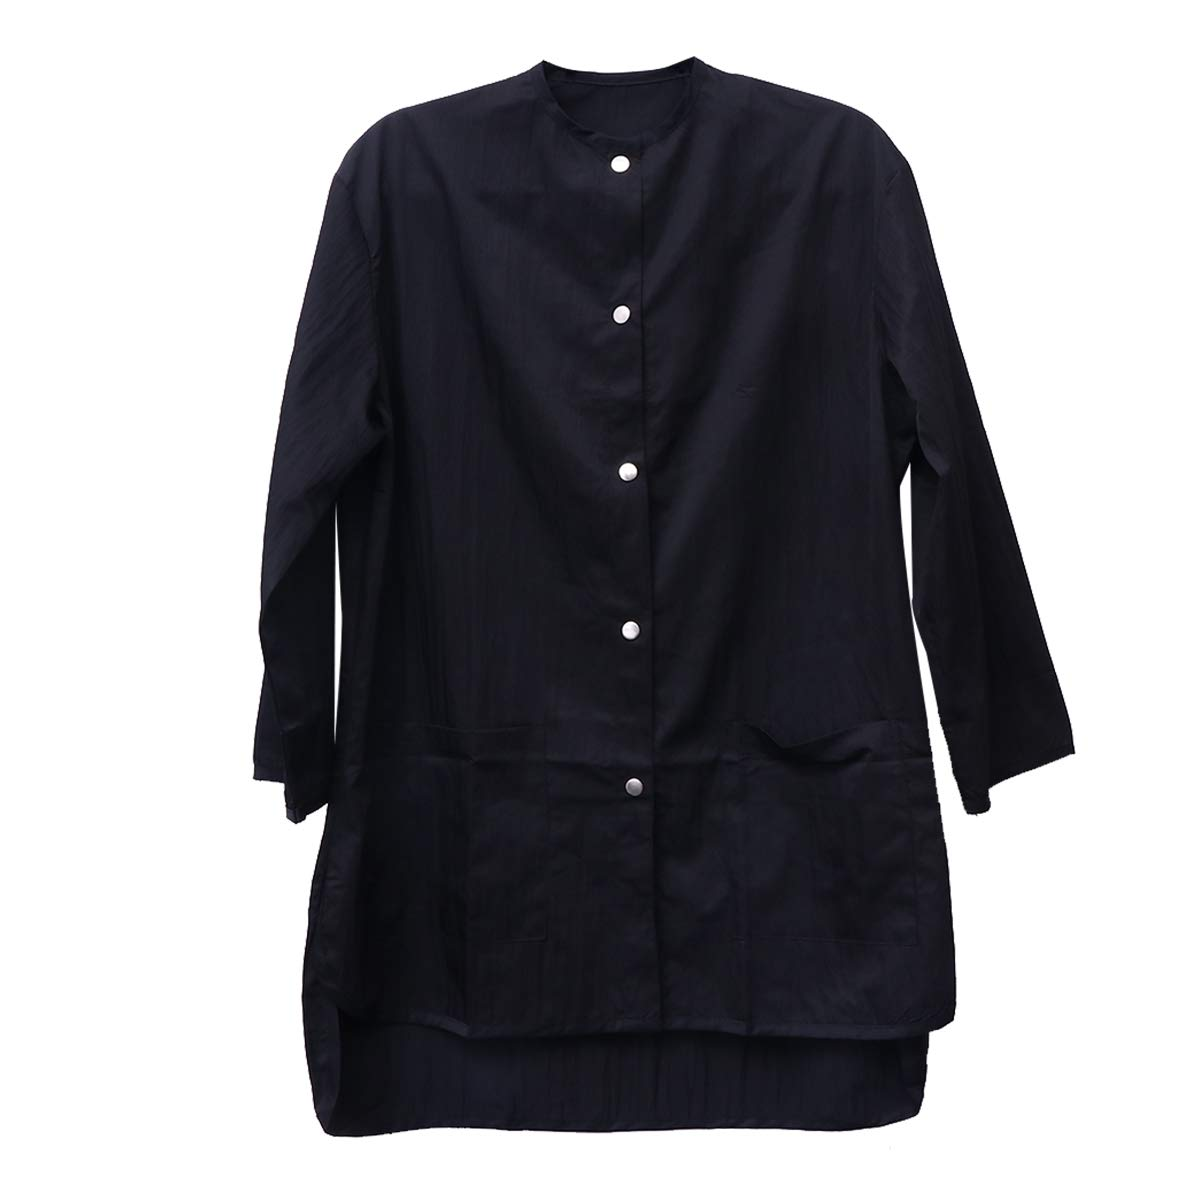 Lurrose Black Long Sleeve Salon Smock Waterproof Hairdressing Cape for Clients Stylist by Lurrose